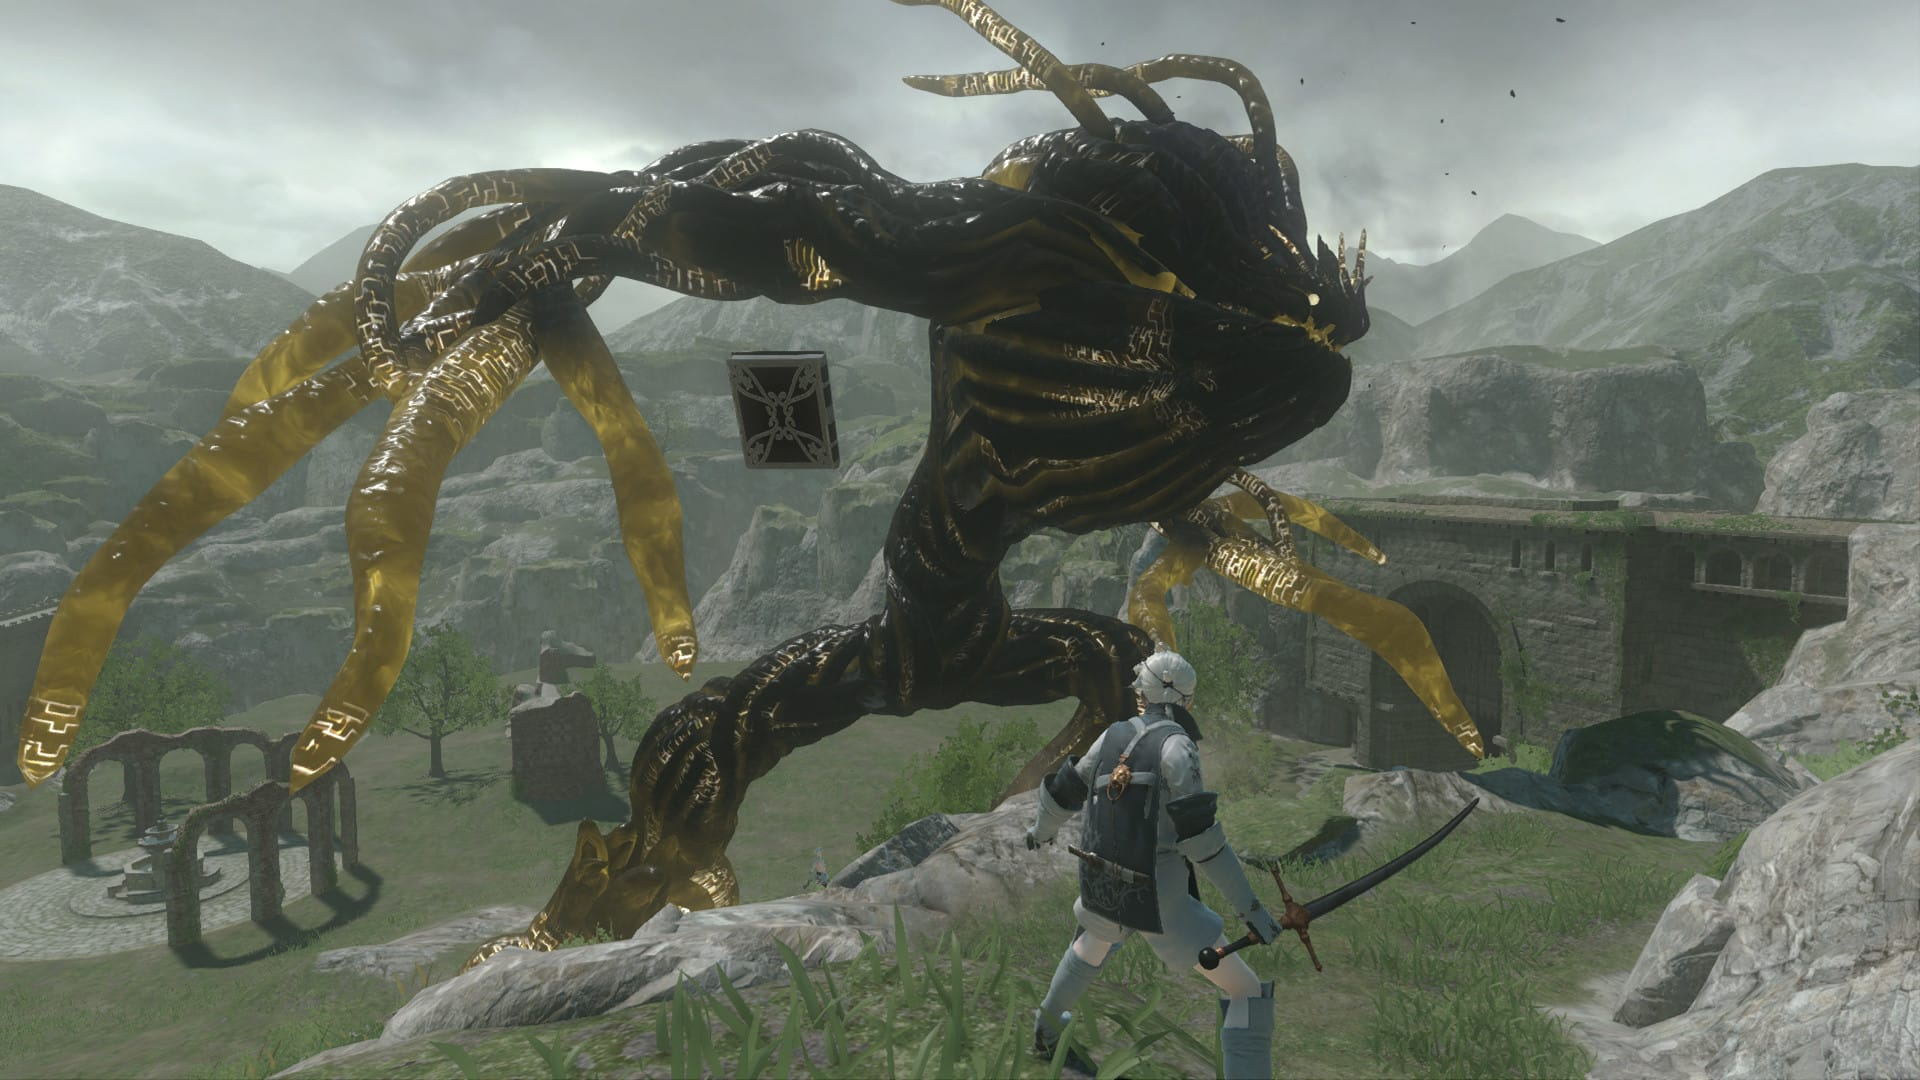 Nier Replicant remake remaster trend is complex but useful and perfect for this underappreciated Square Enix Yoko Taro gem